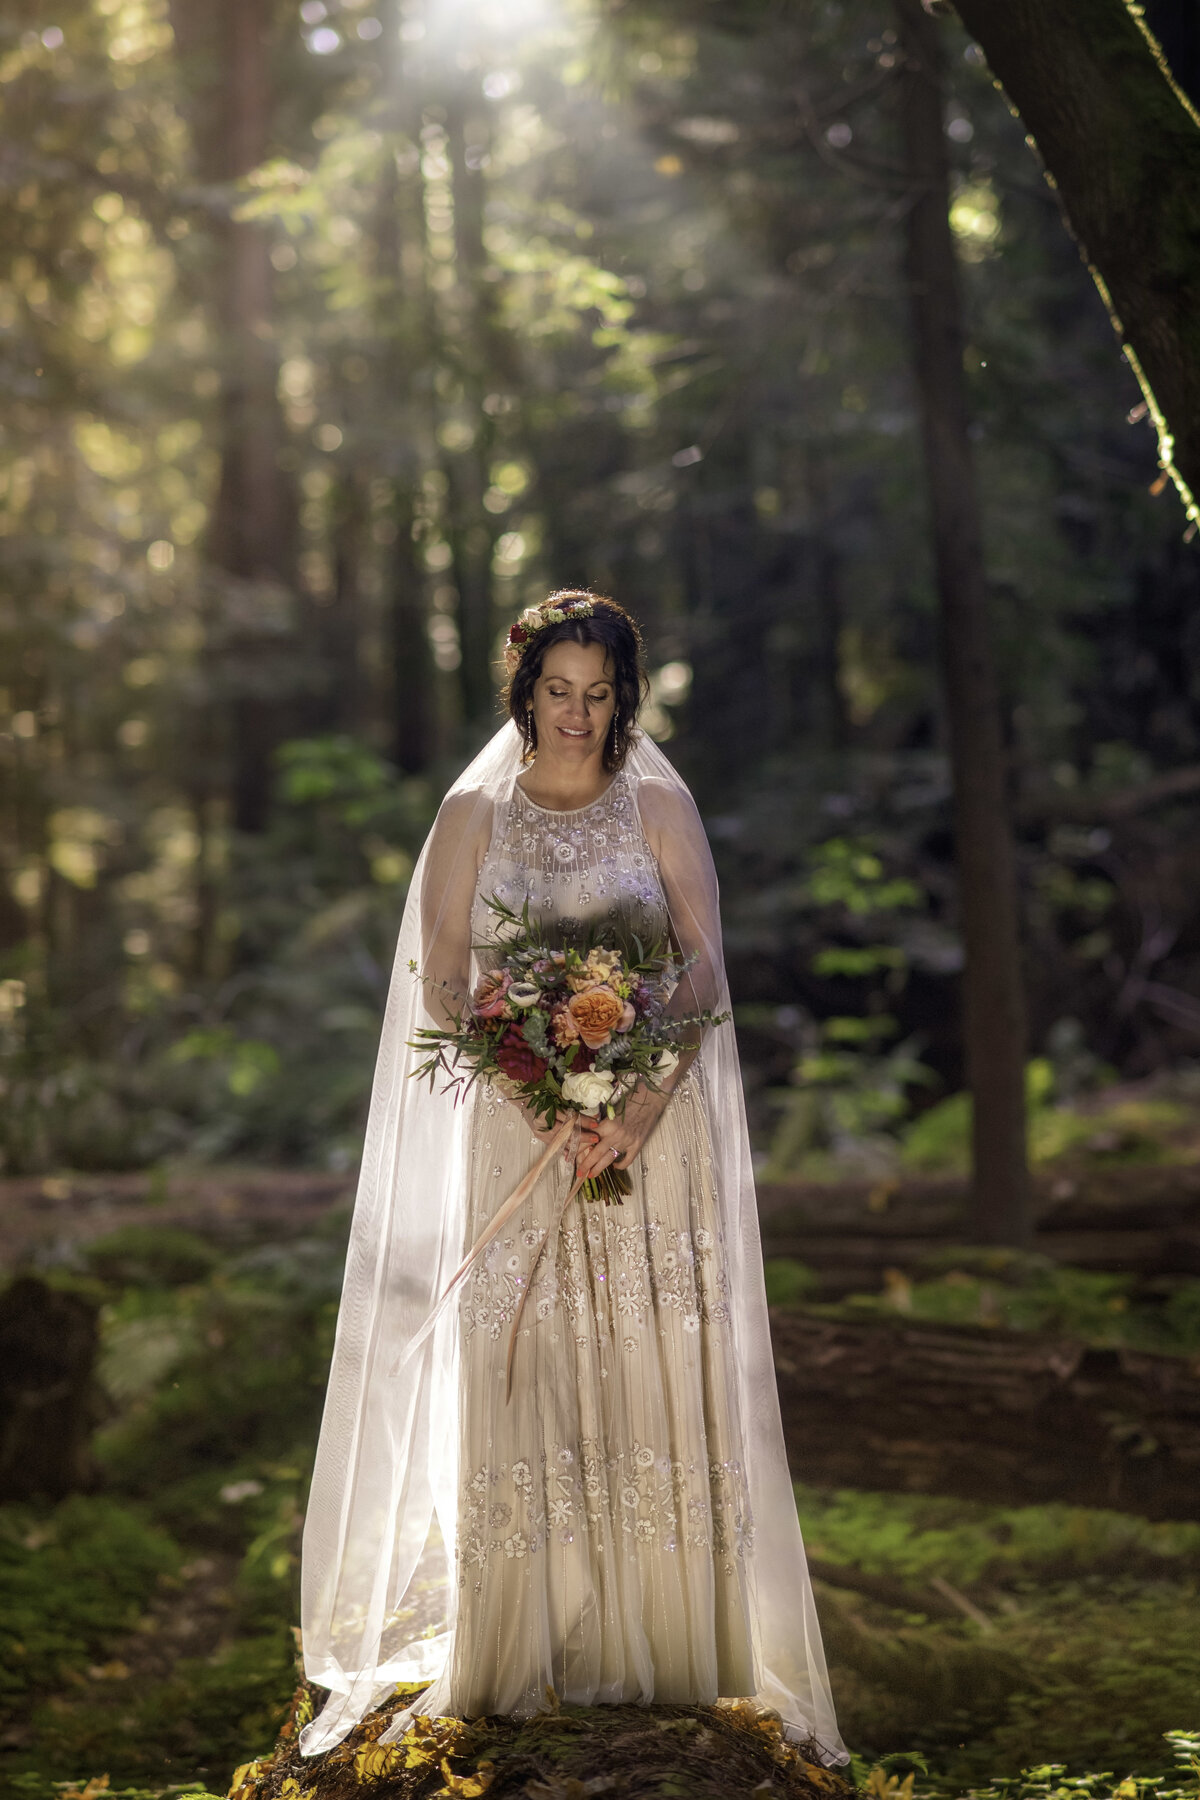 Redway-California-elopement-photographer-Parky's-Pics-Photography-redwoods-elopement-Avenue-of-the-Giants-Pepperwood-California-08.jpg